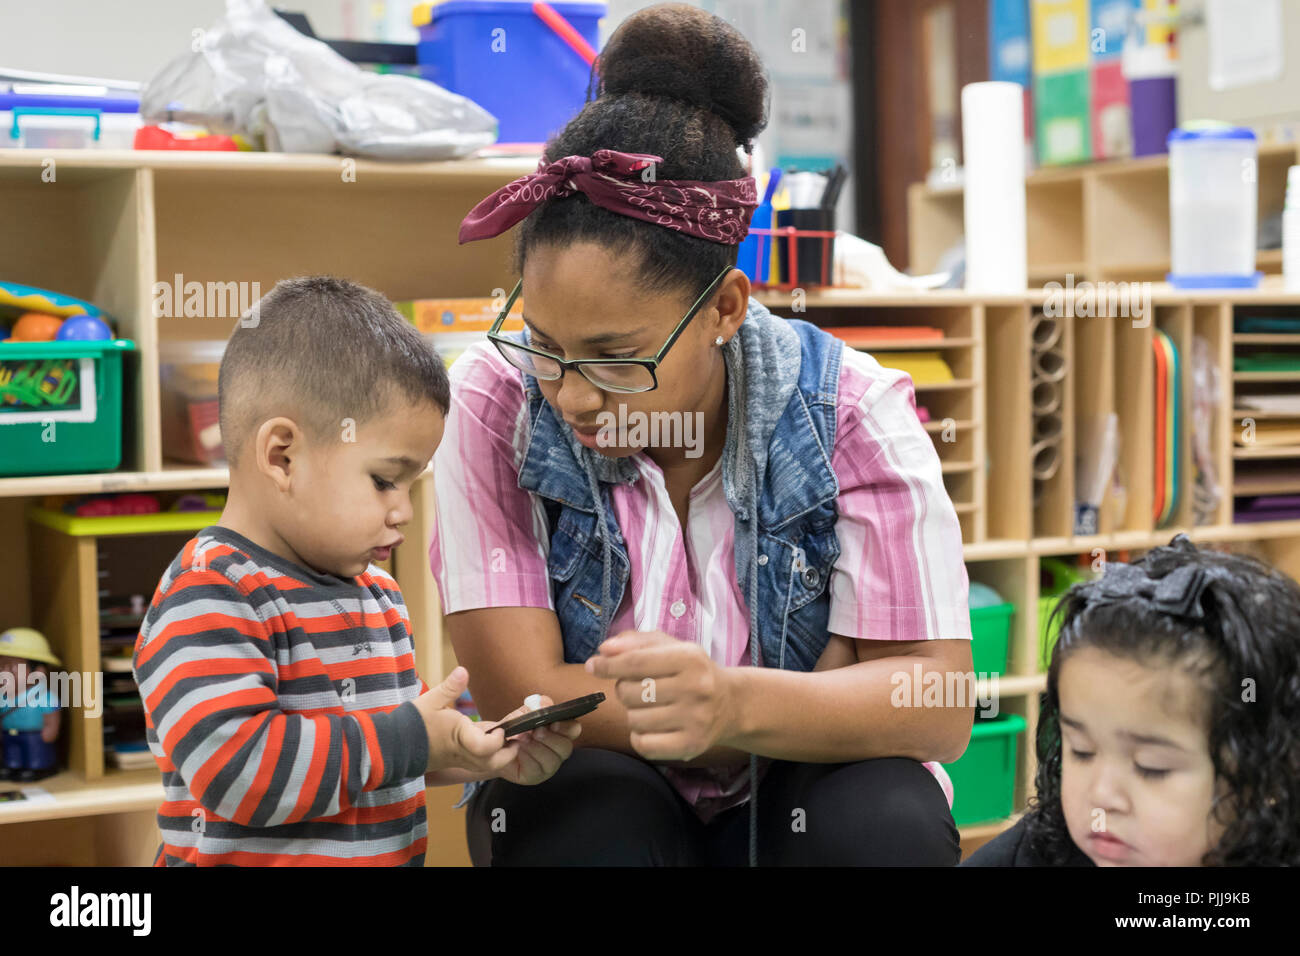 Houston, Texas - A child in the two-year-olds classroom of Wesley Community Center's Early Childhood Education program. - Stock Image